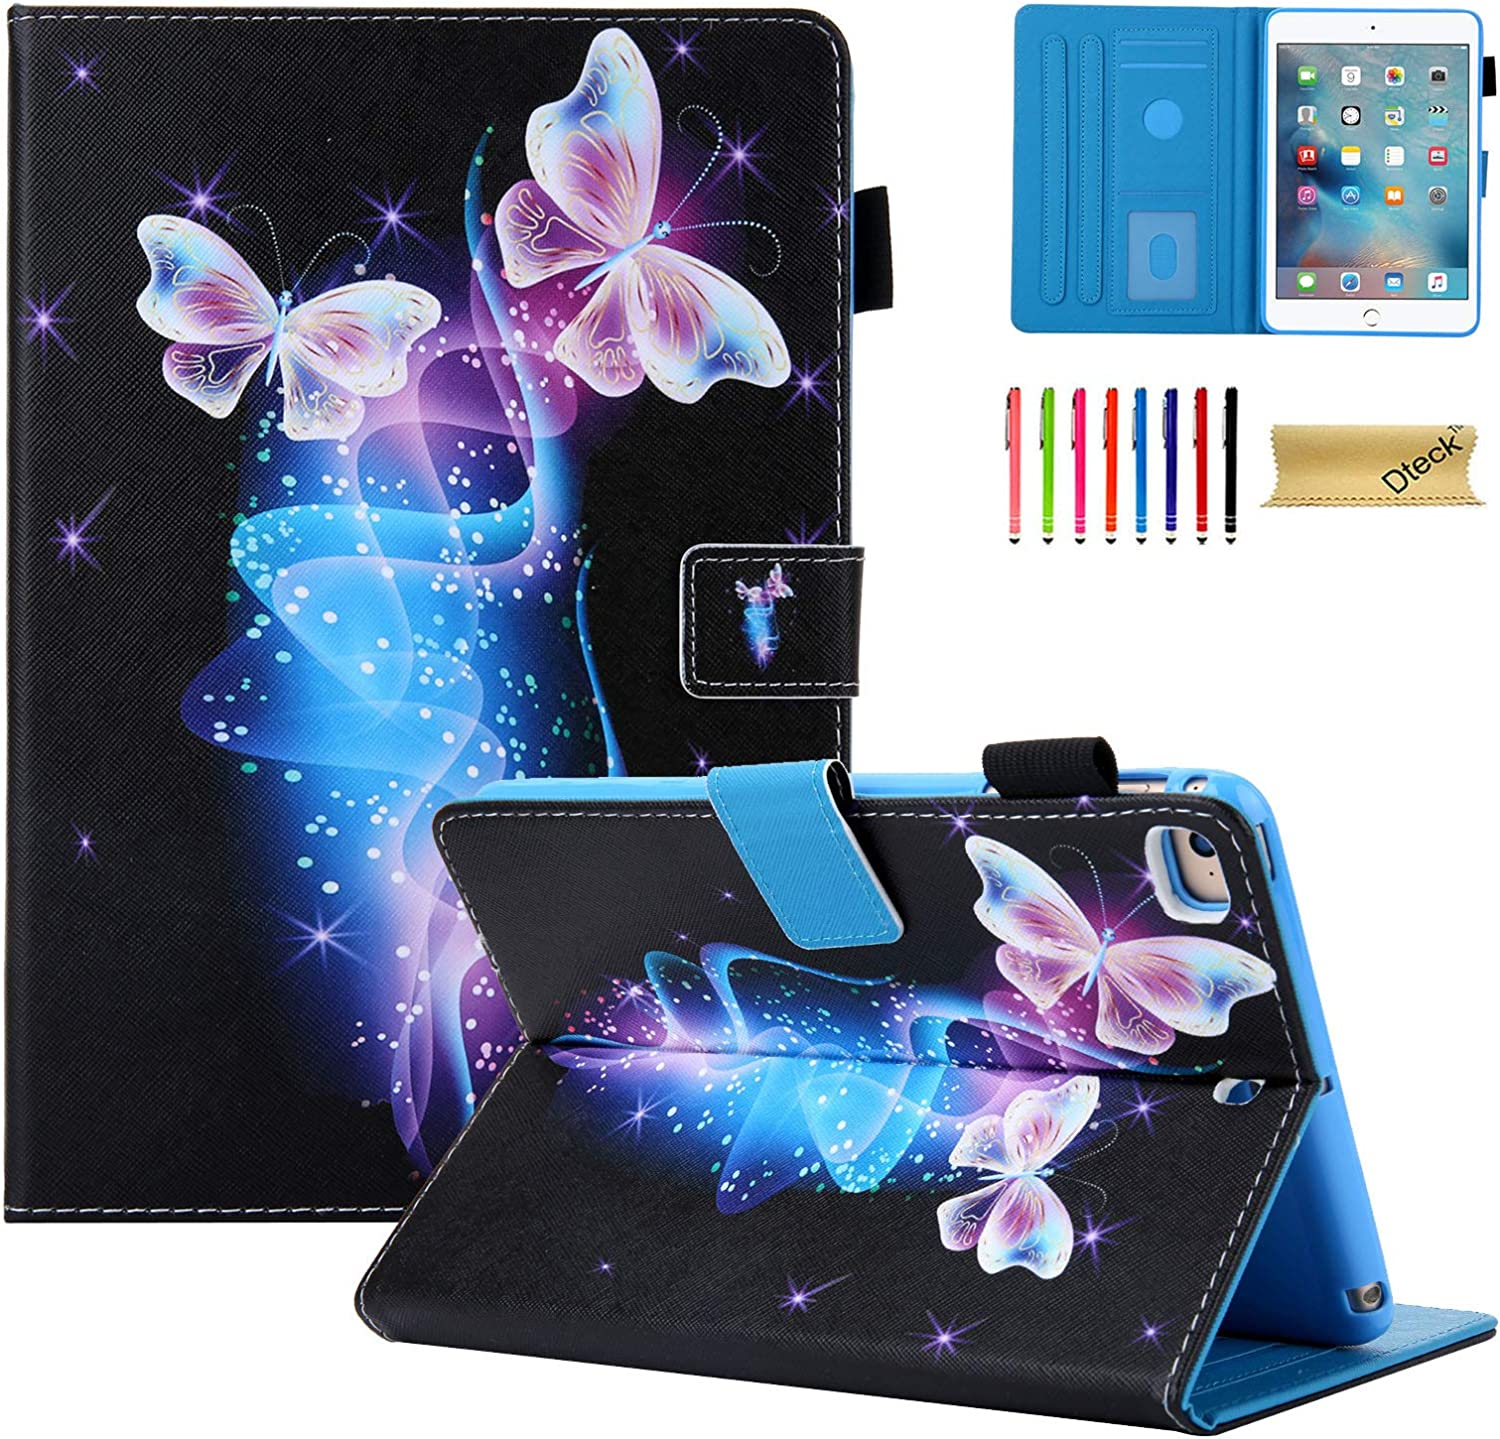 iPad Mini 4 Case, iPad Mini 5 Case, Case iPad Mini for Girls/Kids, Dteck Folio Leather Multi-Angle Viewing Smart Cover with Sleep/Wake Function for Apple iPad Mini 5/Mini 4/3 2 1, Twinkle Butterfly